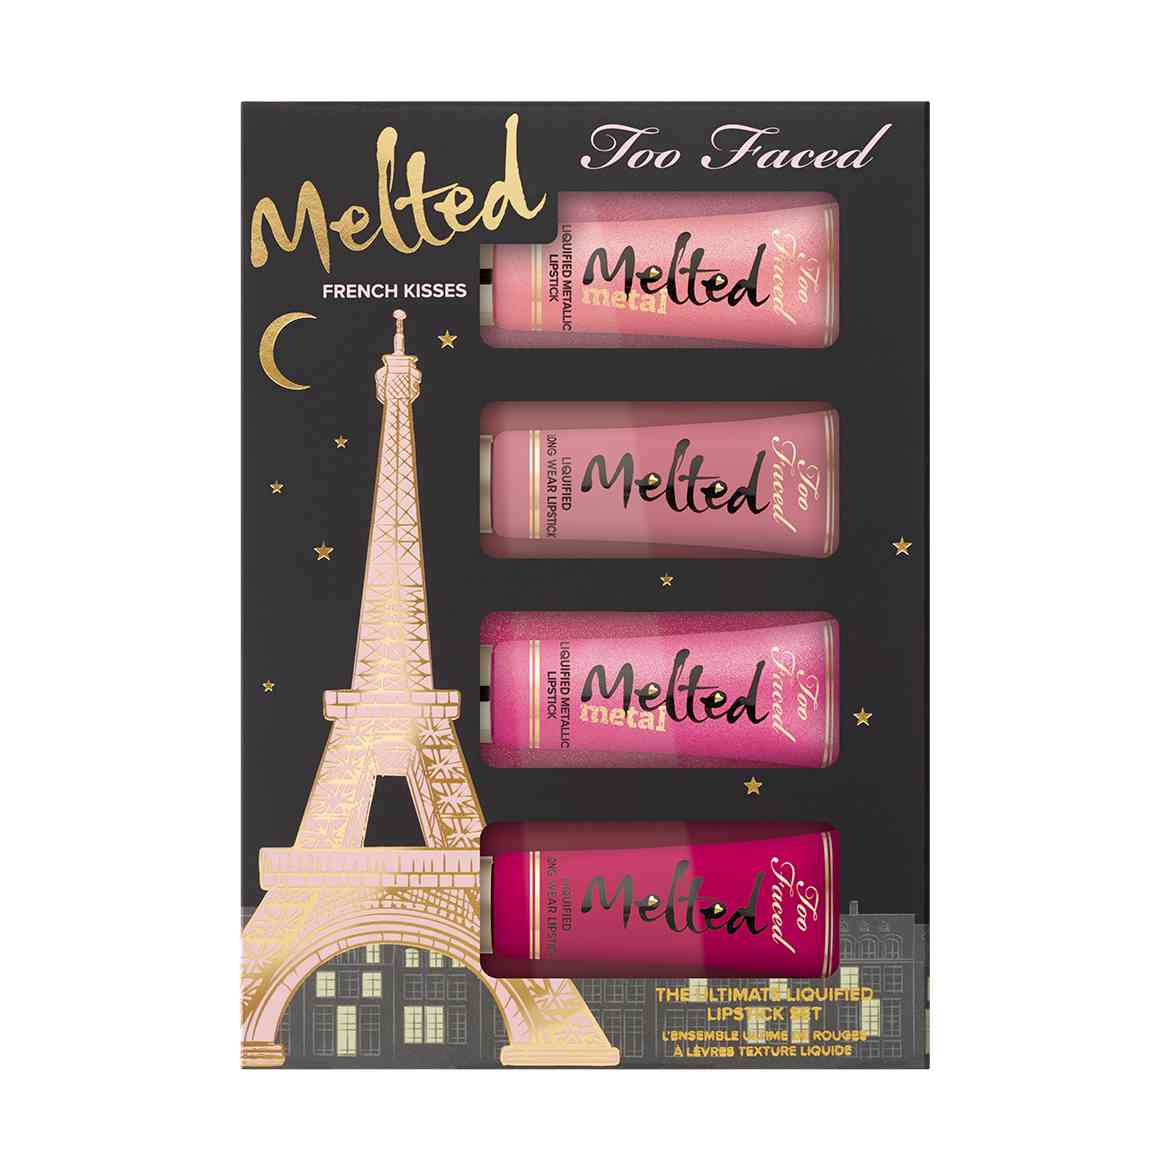 too faced french kisses melted